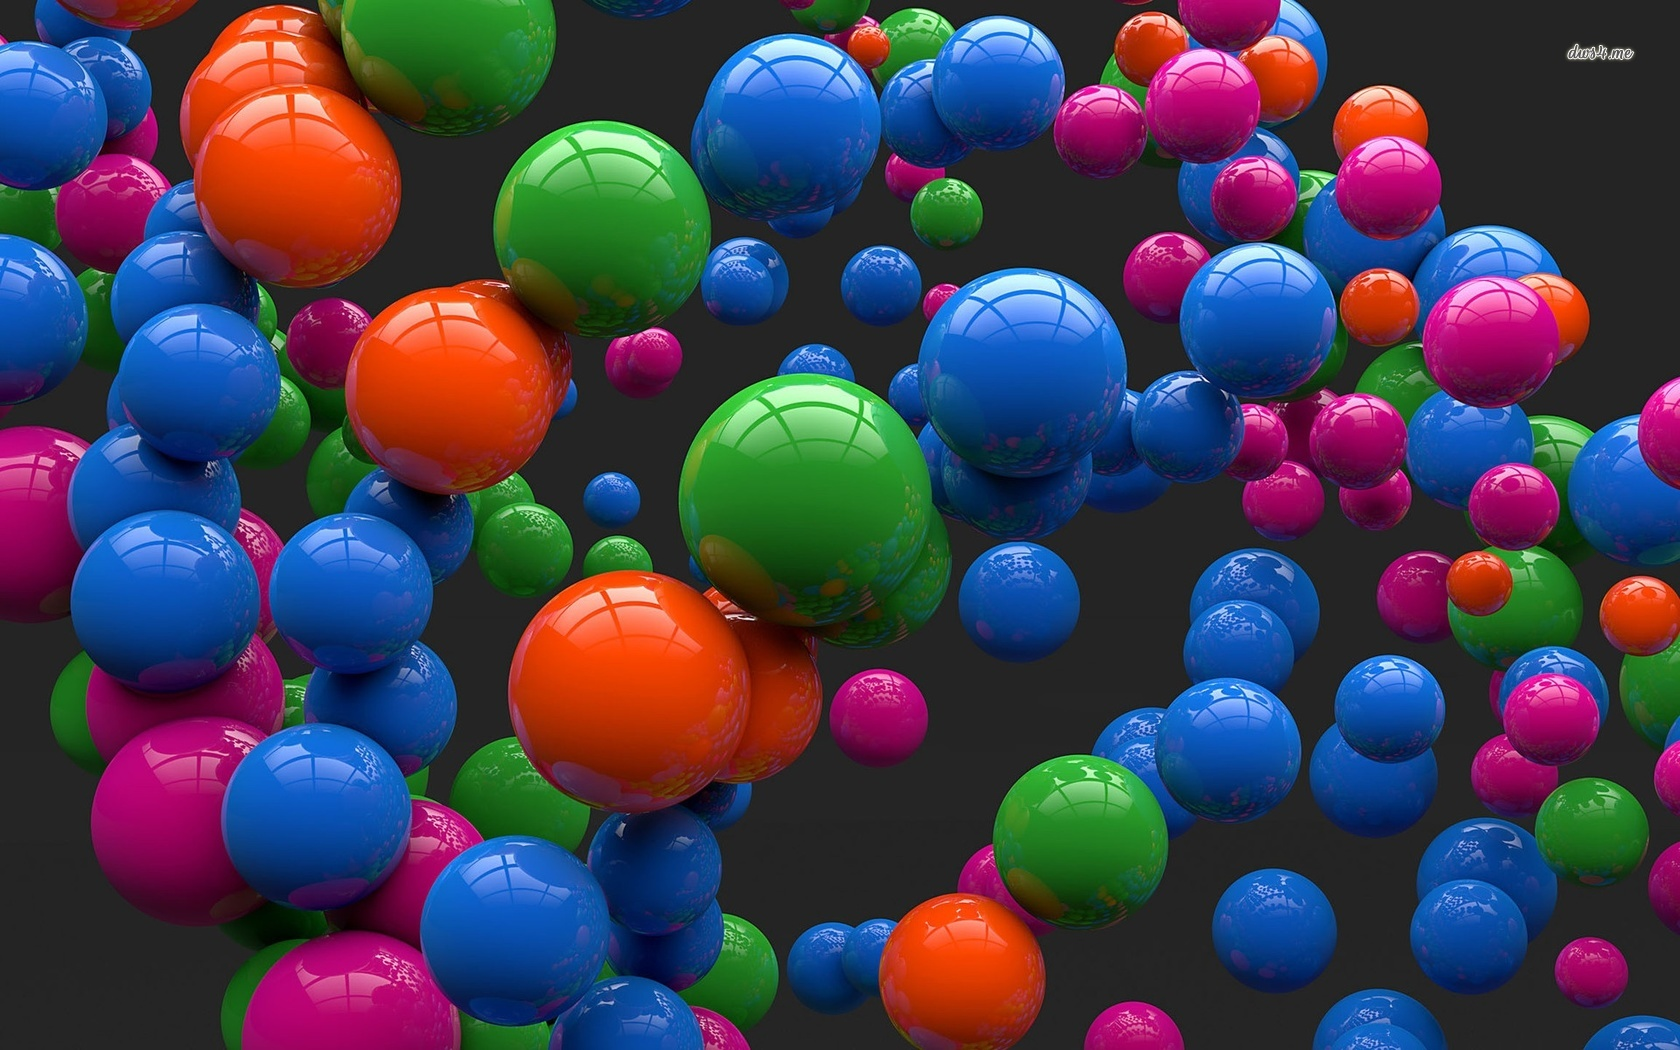 Colorful shiny balls floating wallpaper